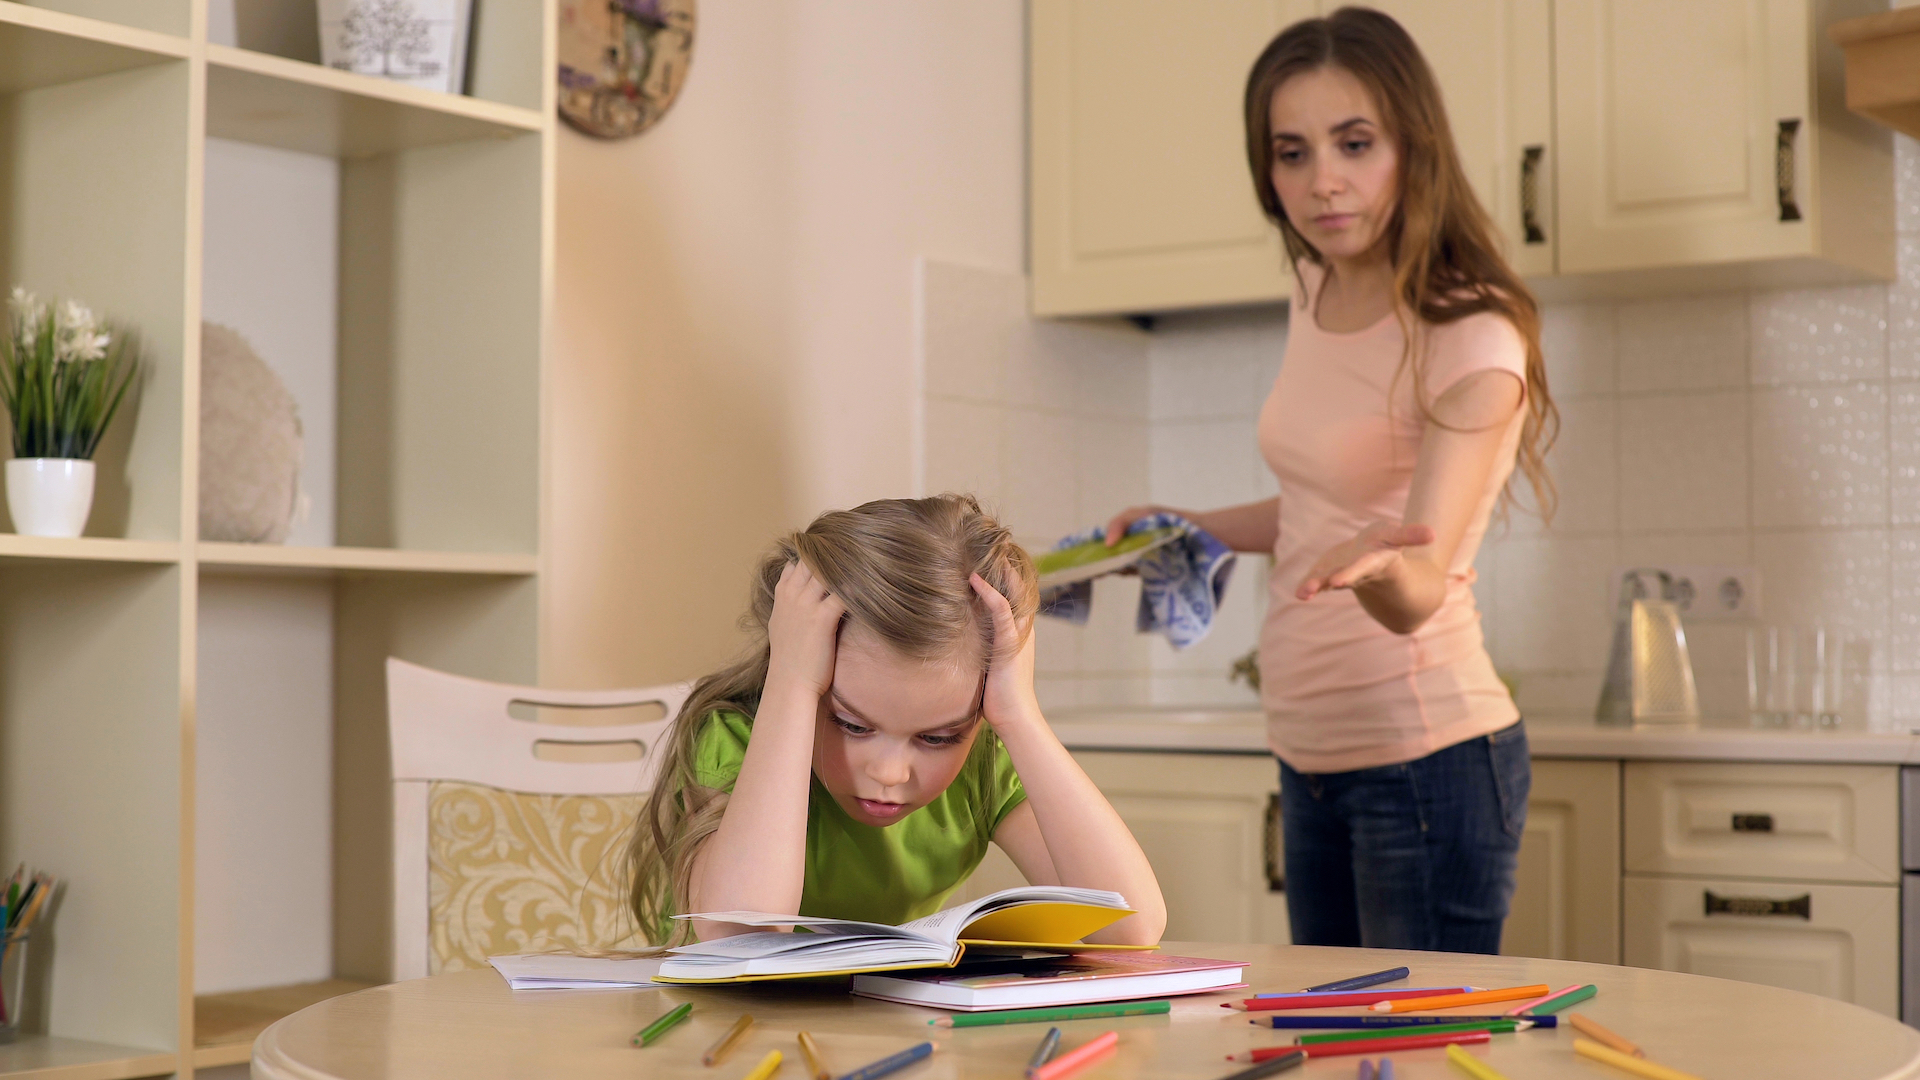 New research has revealed that helicopter parenting can negatively affect a child's emotional well-being and behavior.